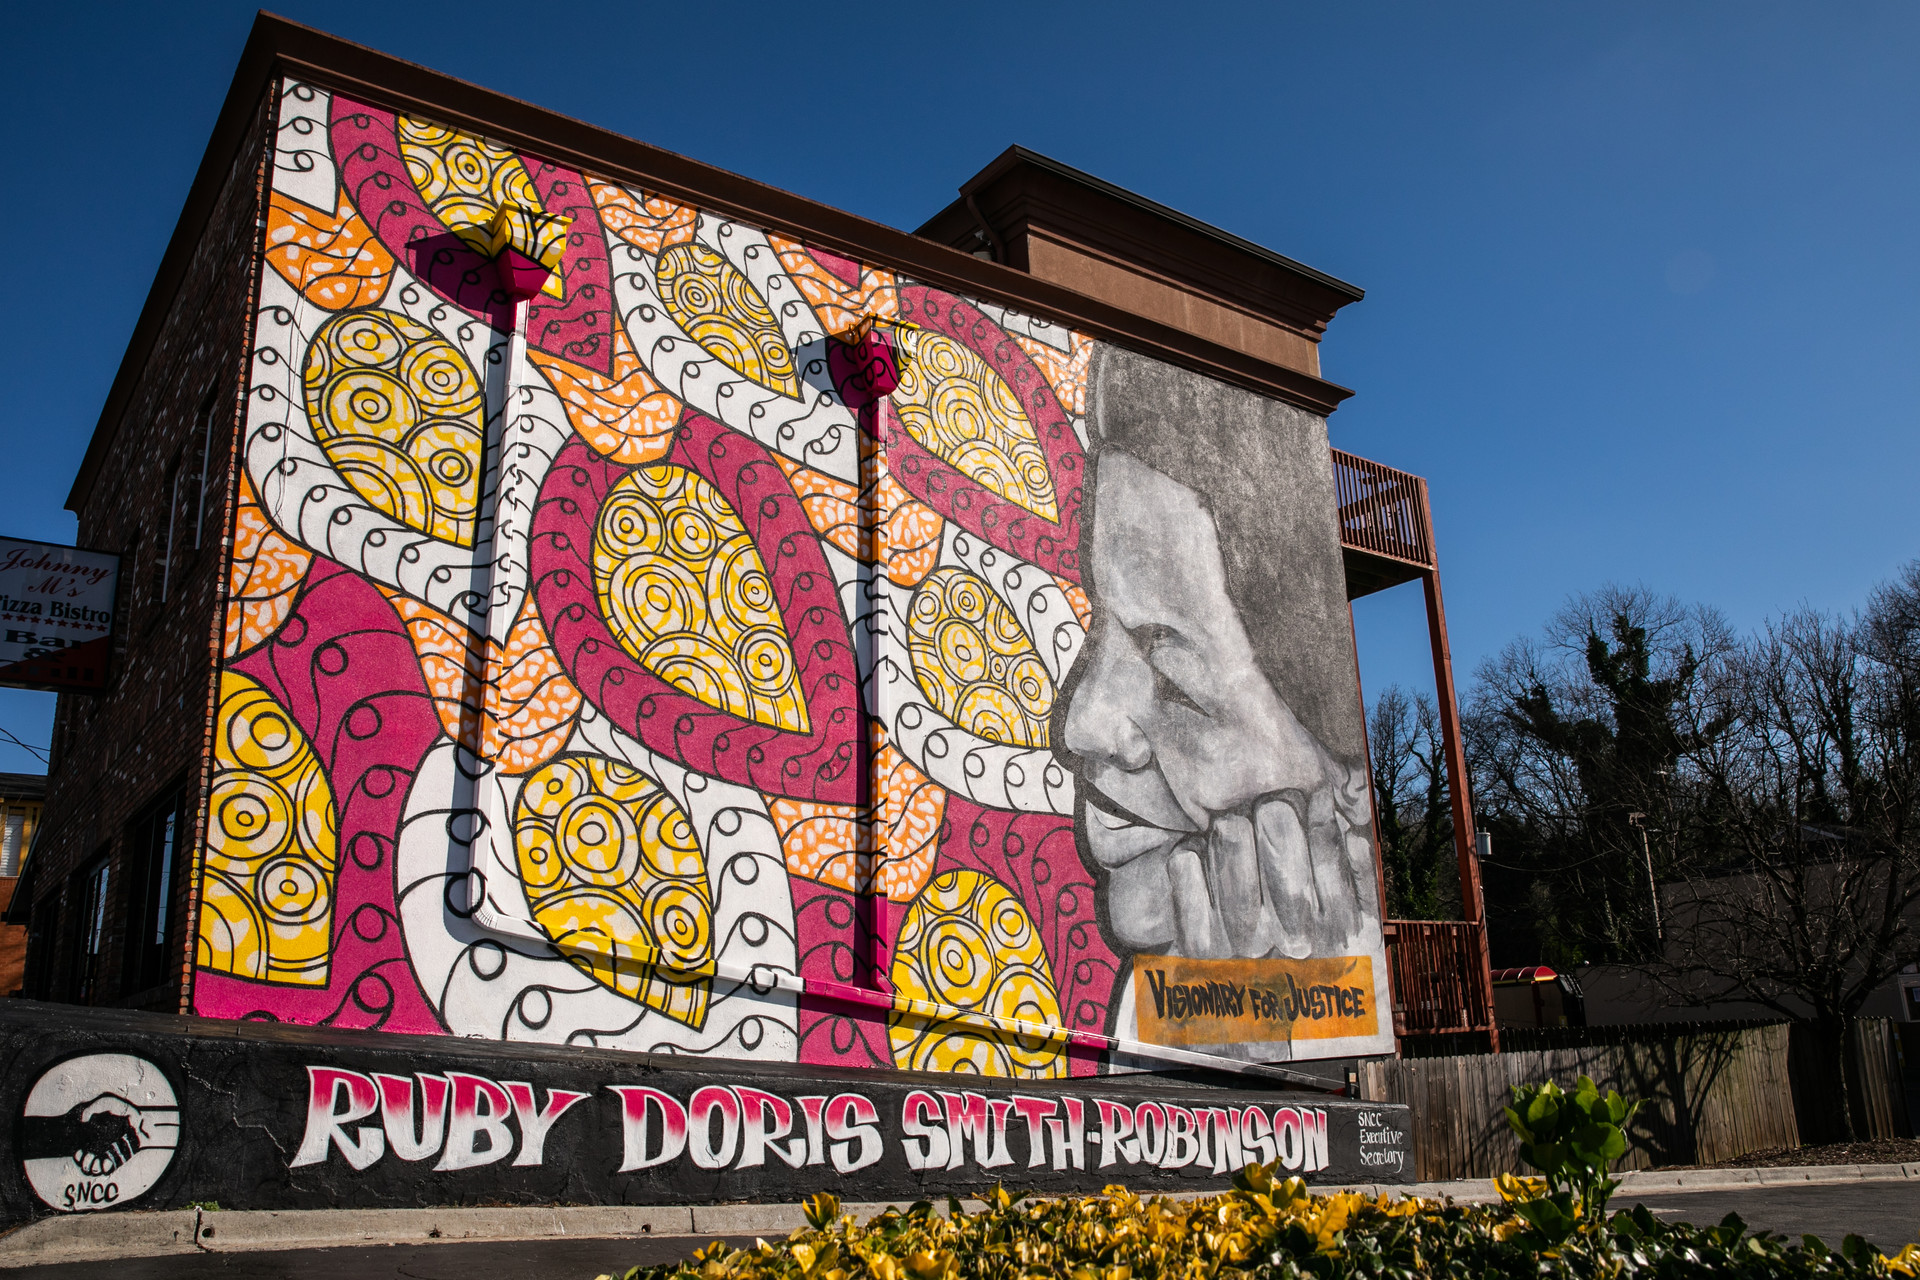 Visionary for Justice - Honoring Ruby Doris Smith-Robinson